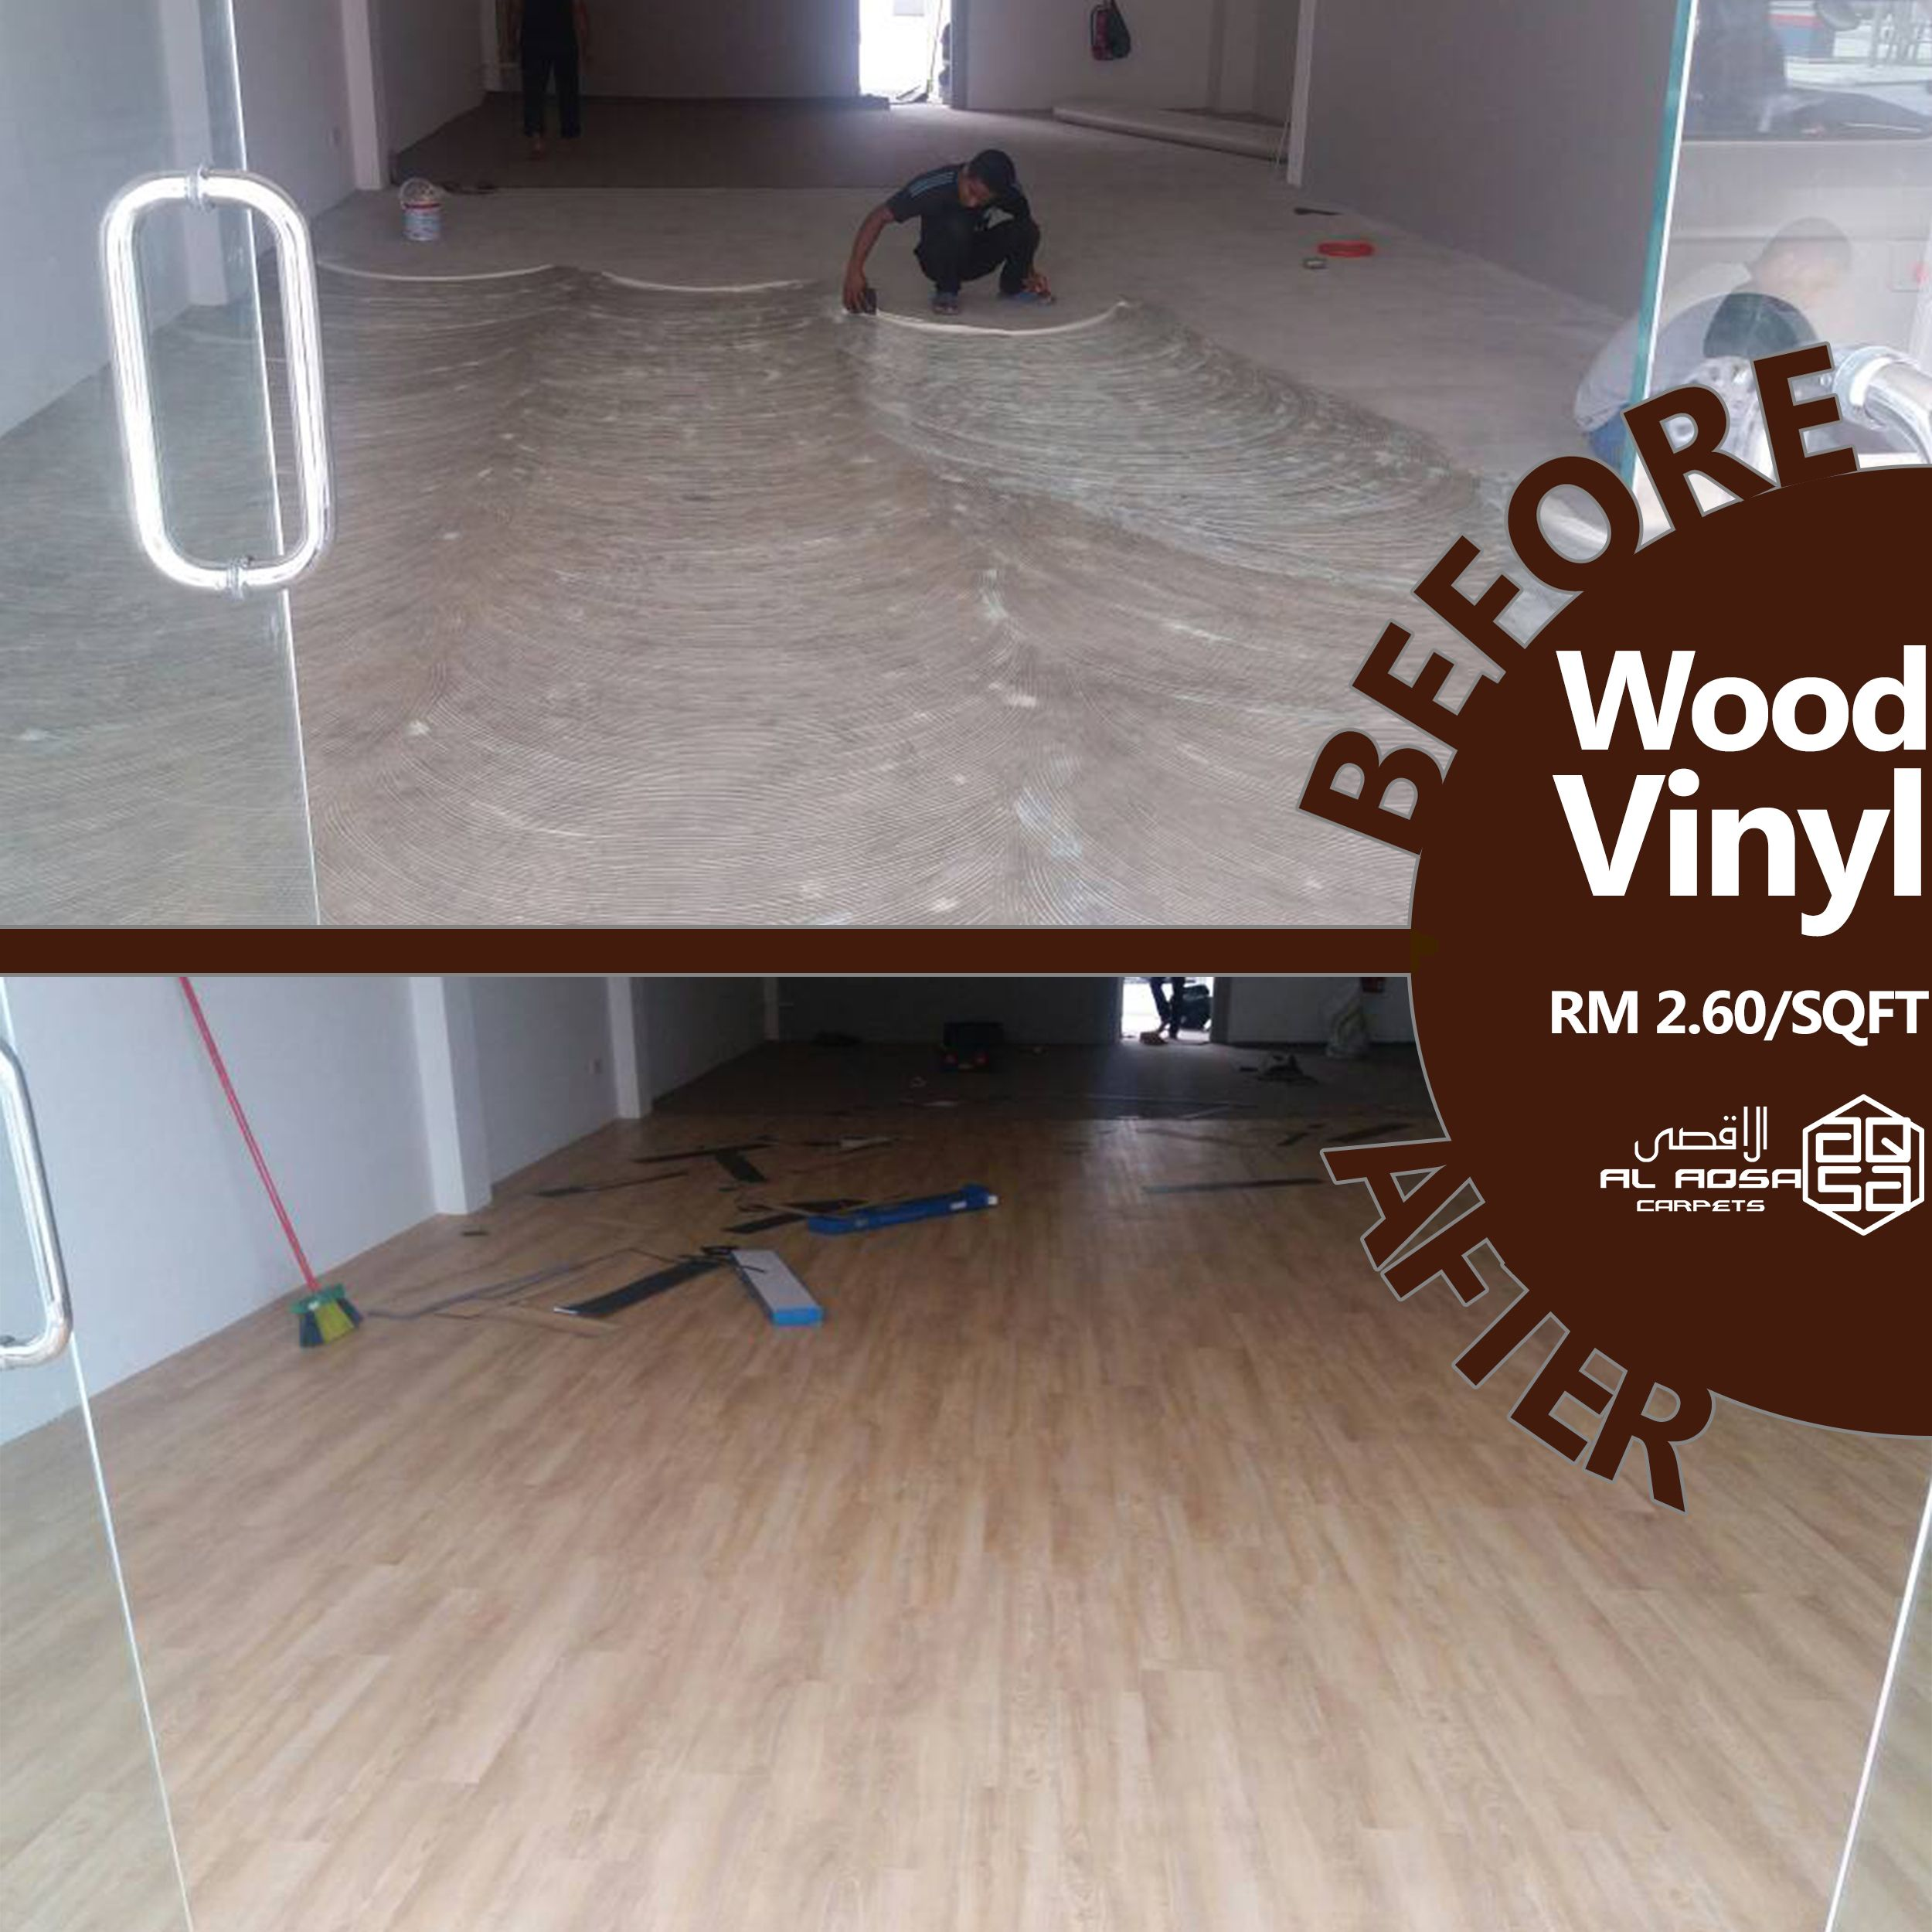 Not Sure Which Flooring Is Best For Your Needs Alaqsa Carpets Will Help You Find A Perfect Match Look At T Vinyl Flooring Pvc Flooring Wood Vinyl